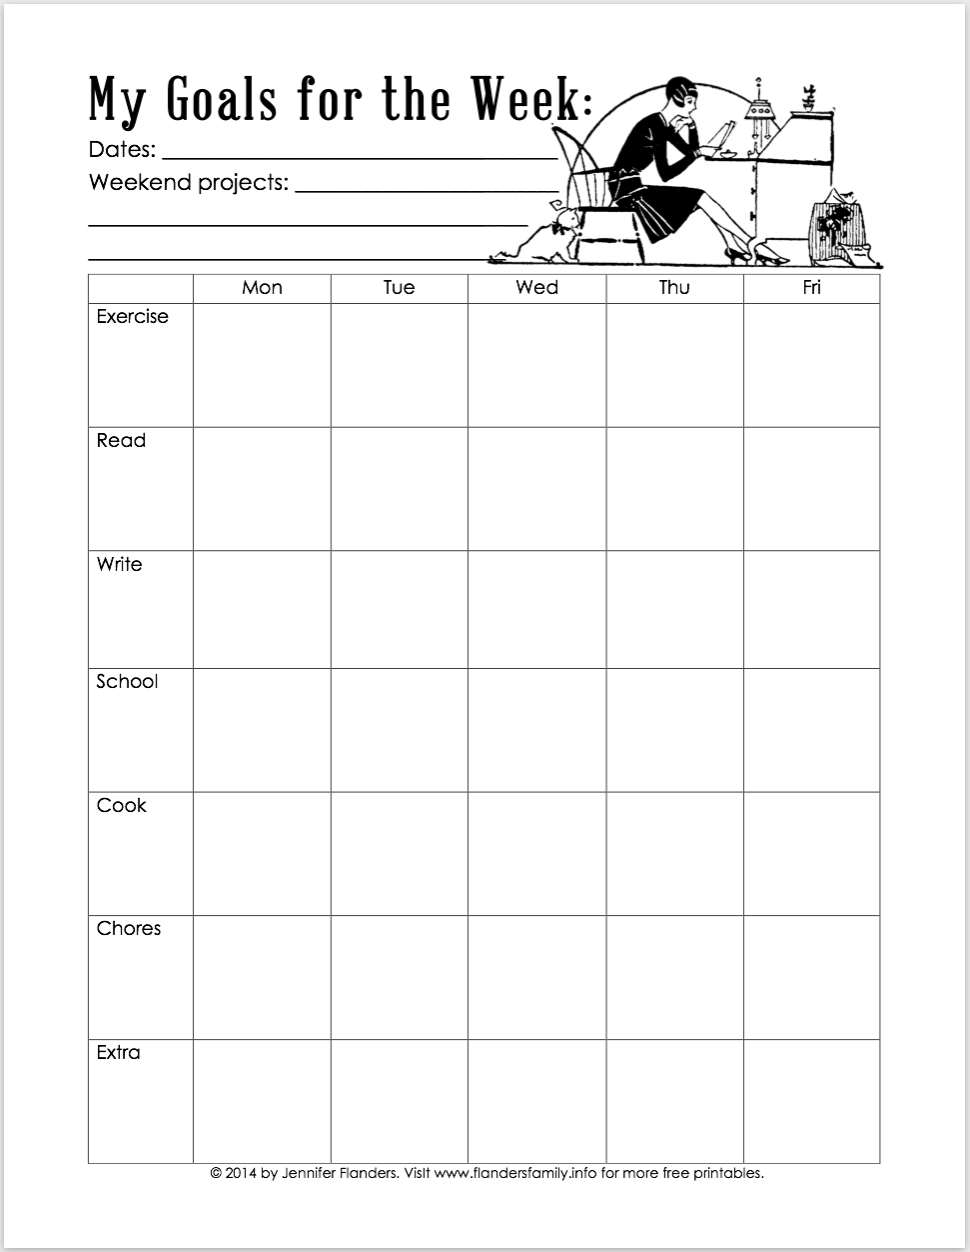 photograph relating to Time Management Printable named Year Regulate Routine Monitoring Printables - Flanders